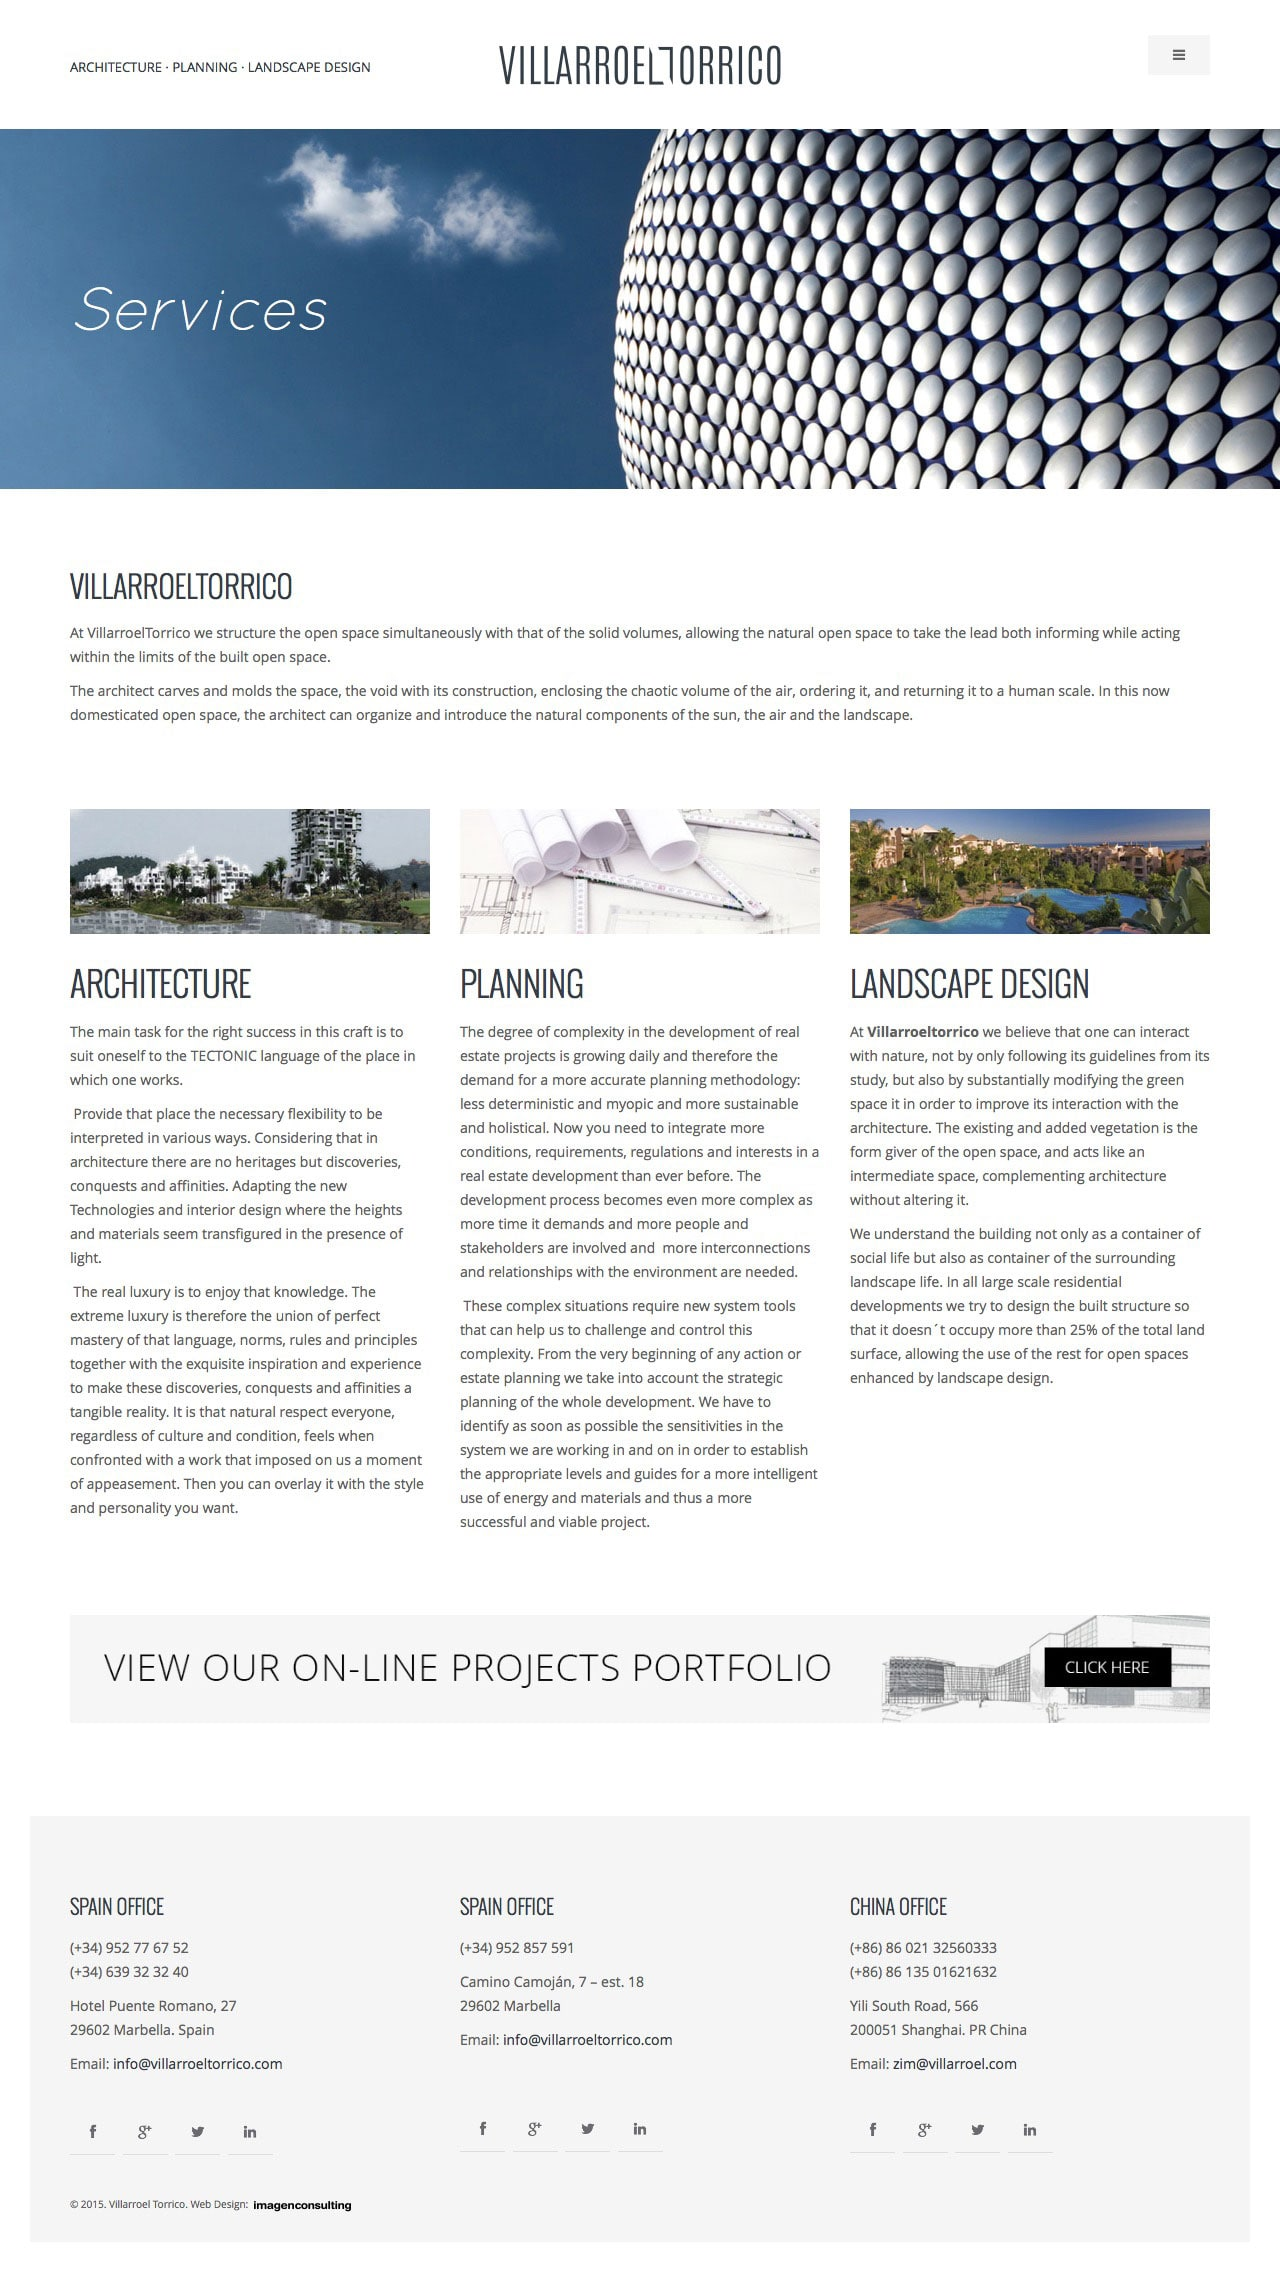 Corporate web design for Villarroeltorrico